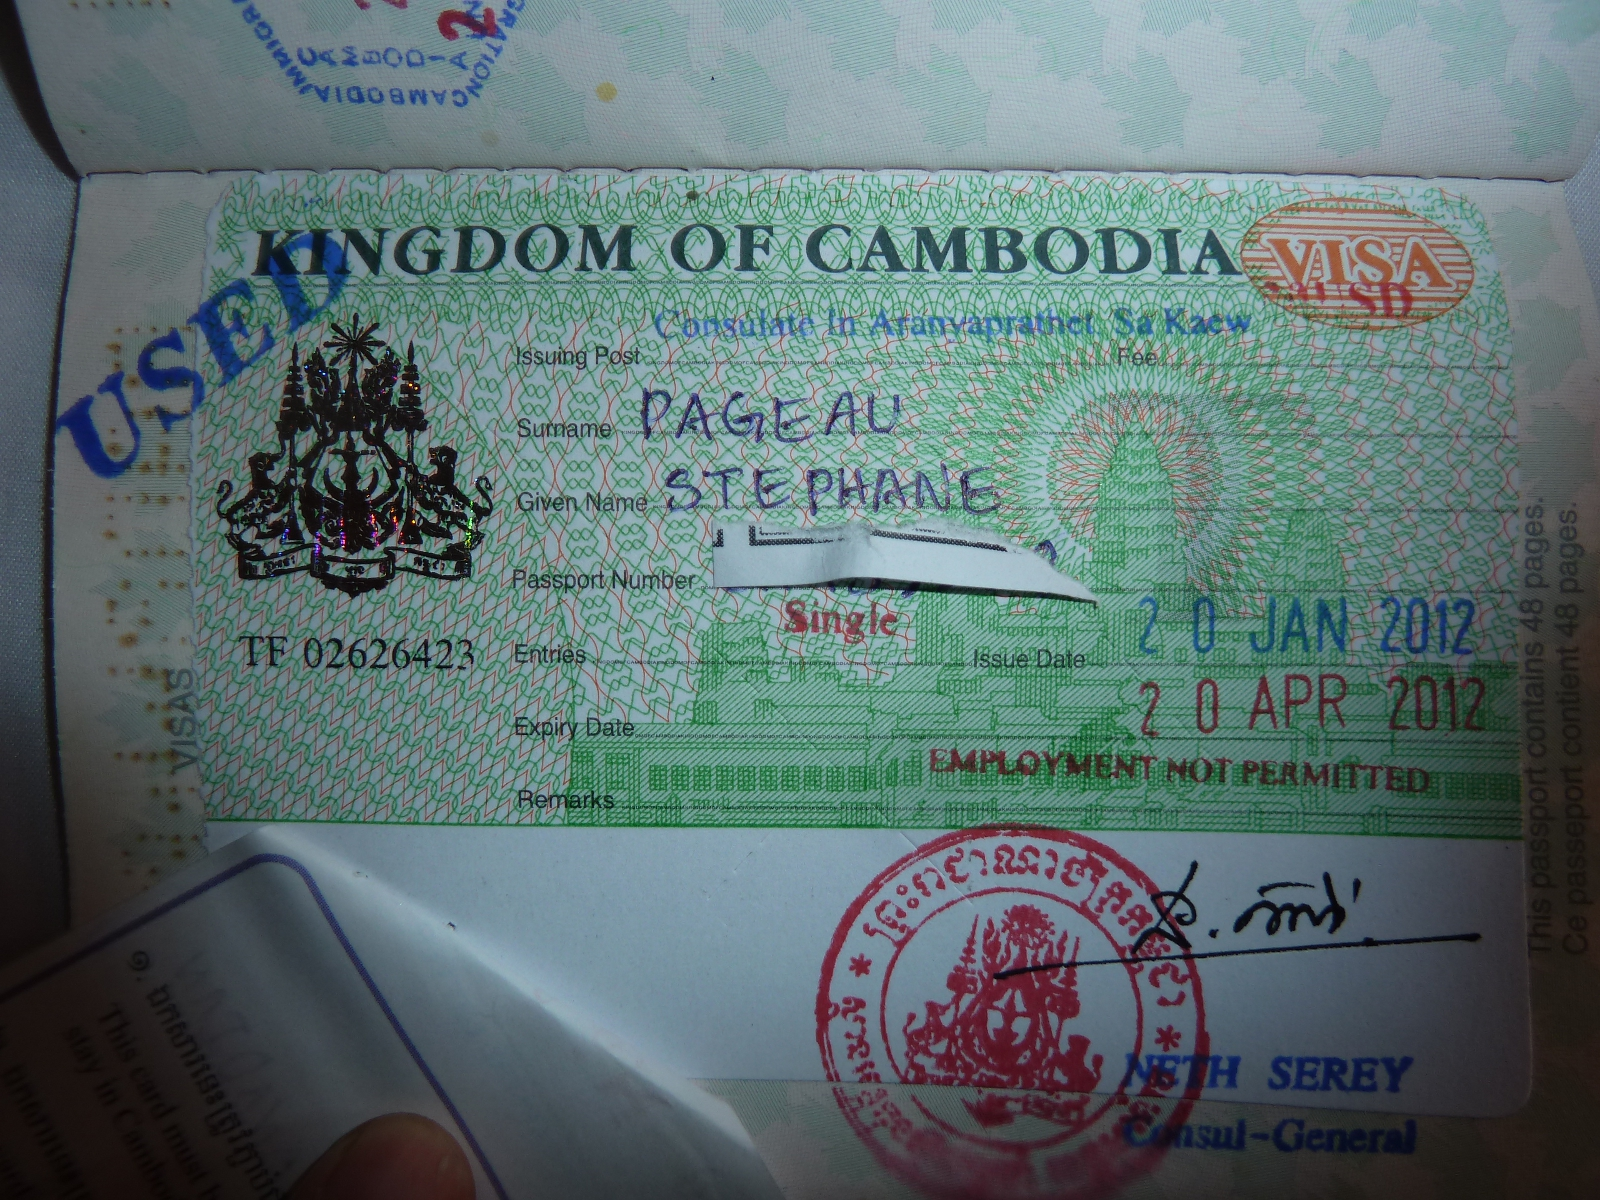 Cambodia e visa photo 28 best Angel images on Pinterest Angel locsin, Angel and Angels